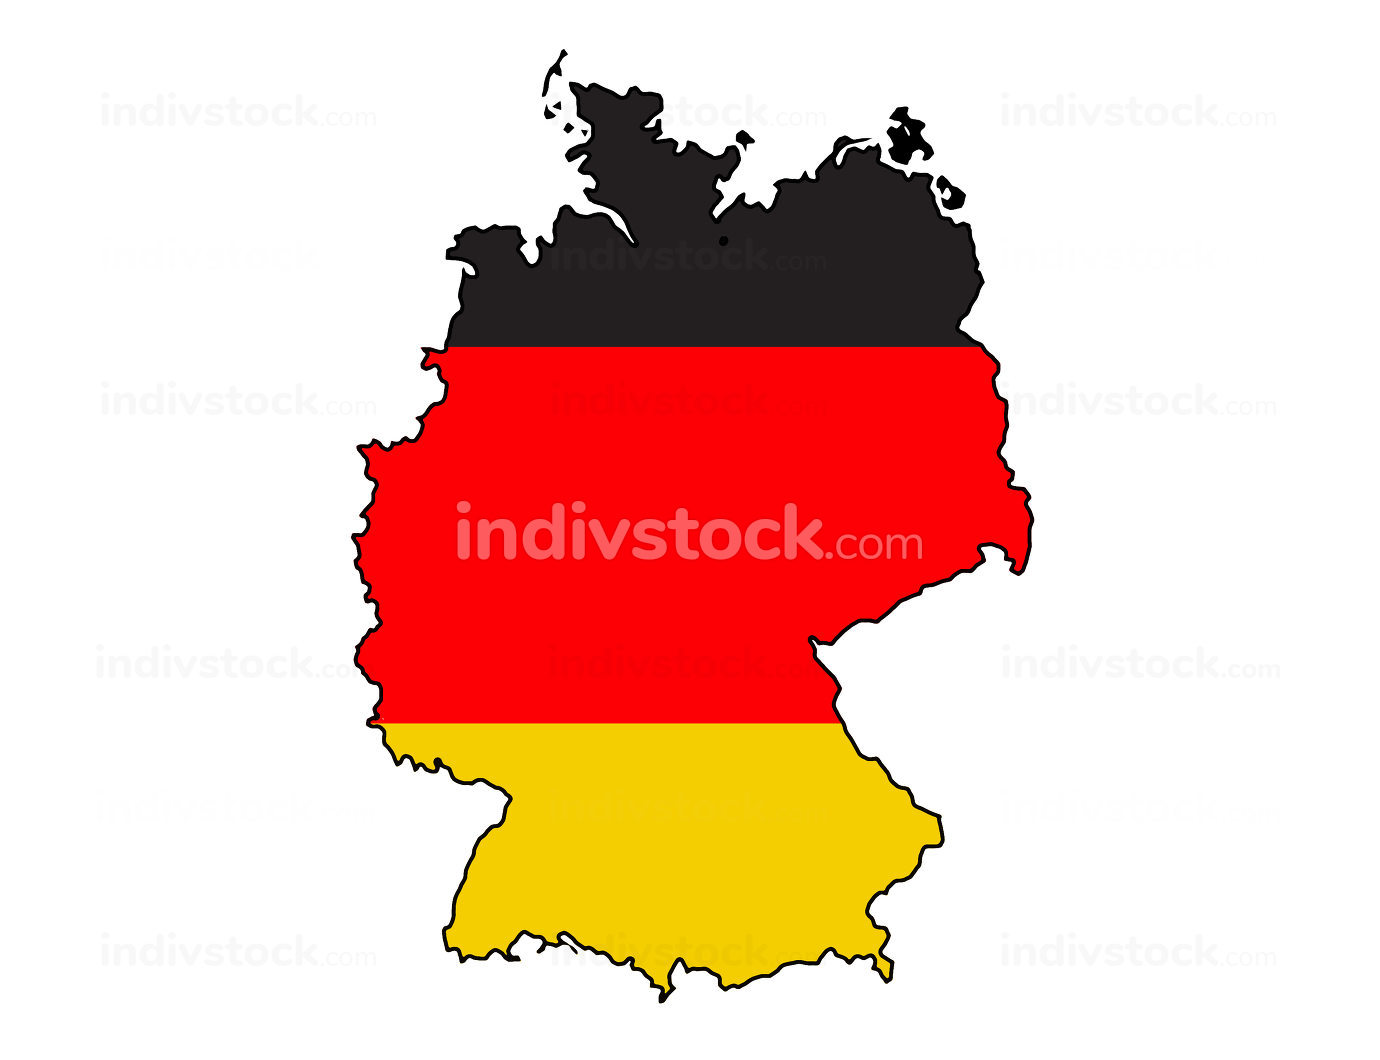 Germany outline map black red yellow 3d-illustration